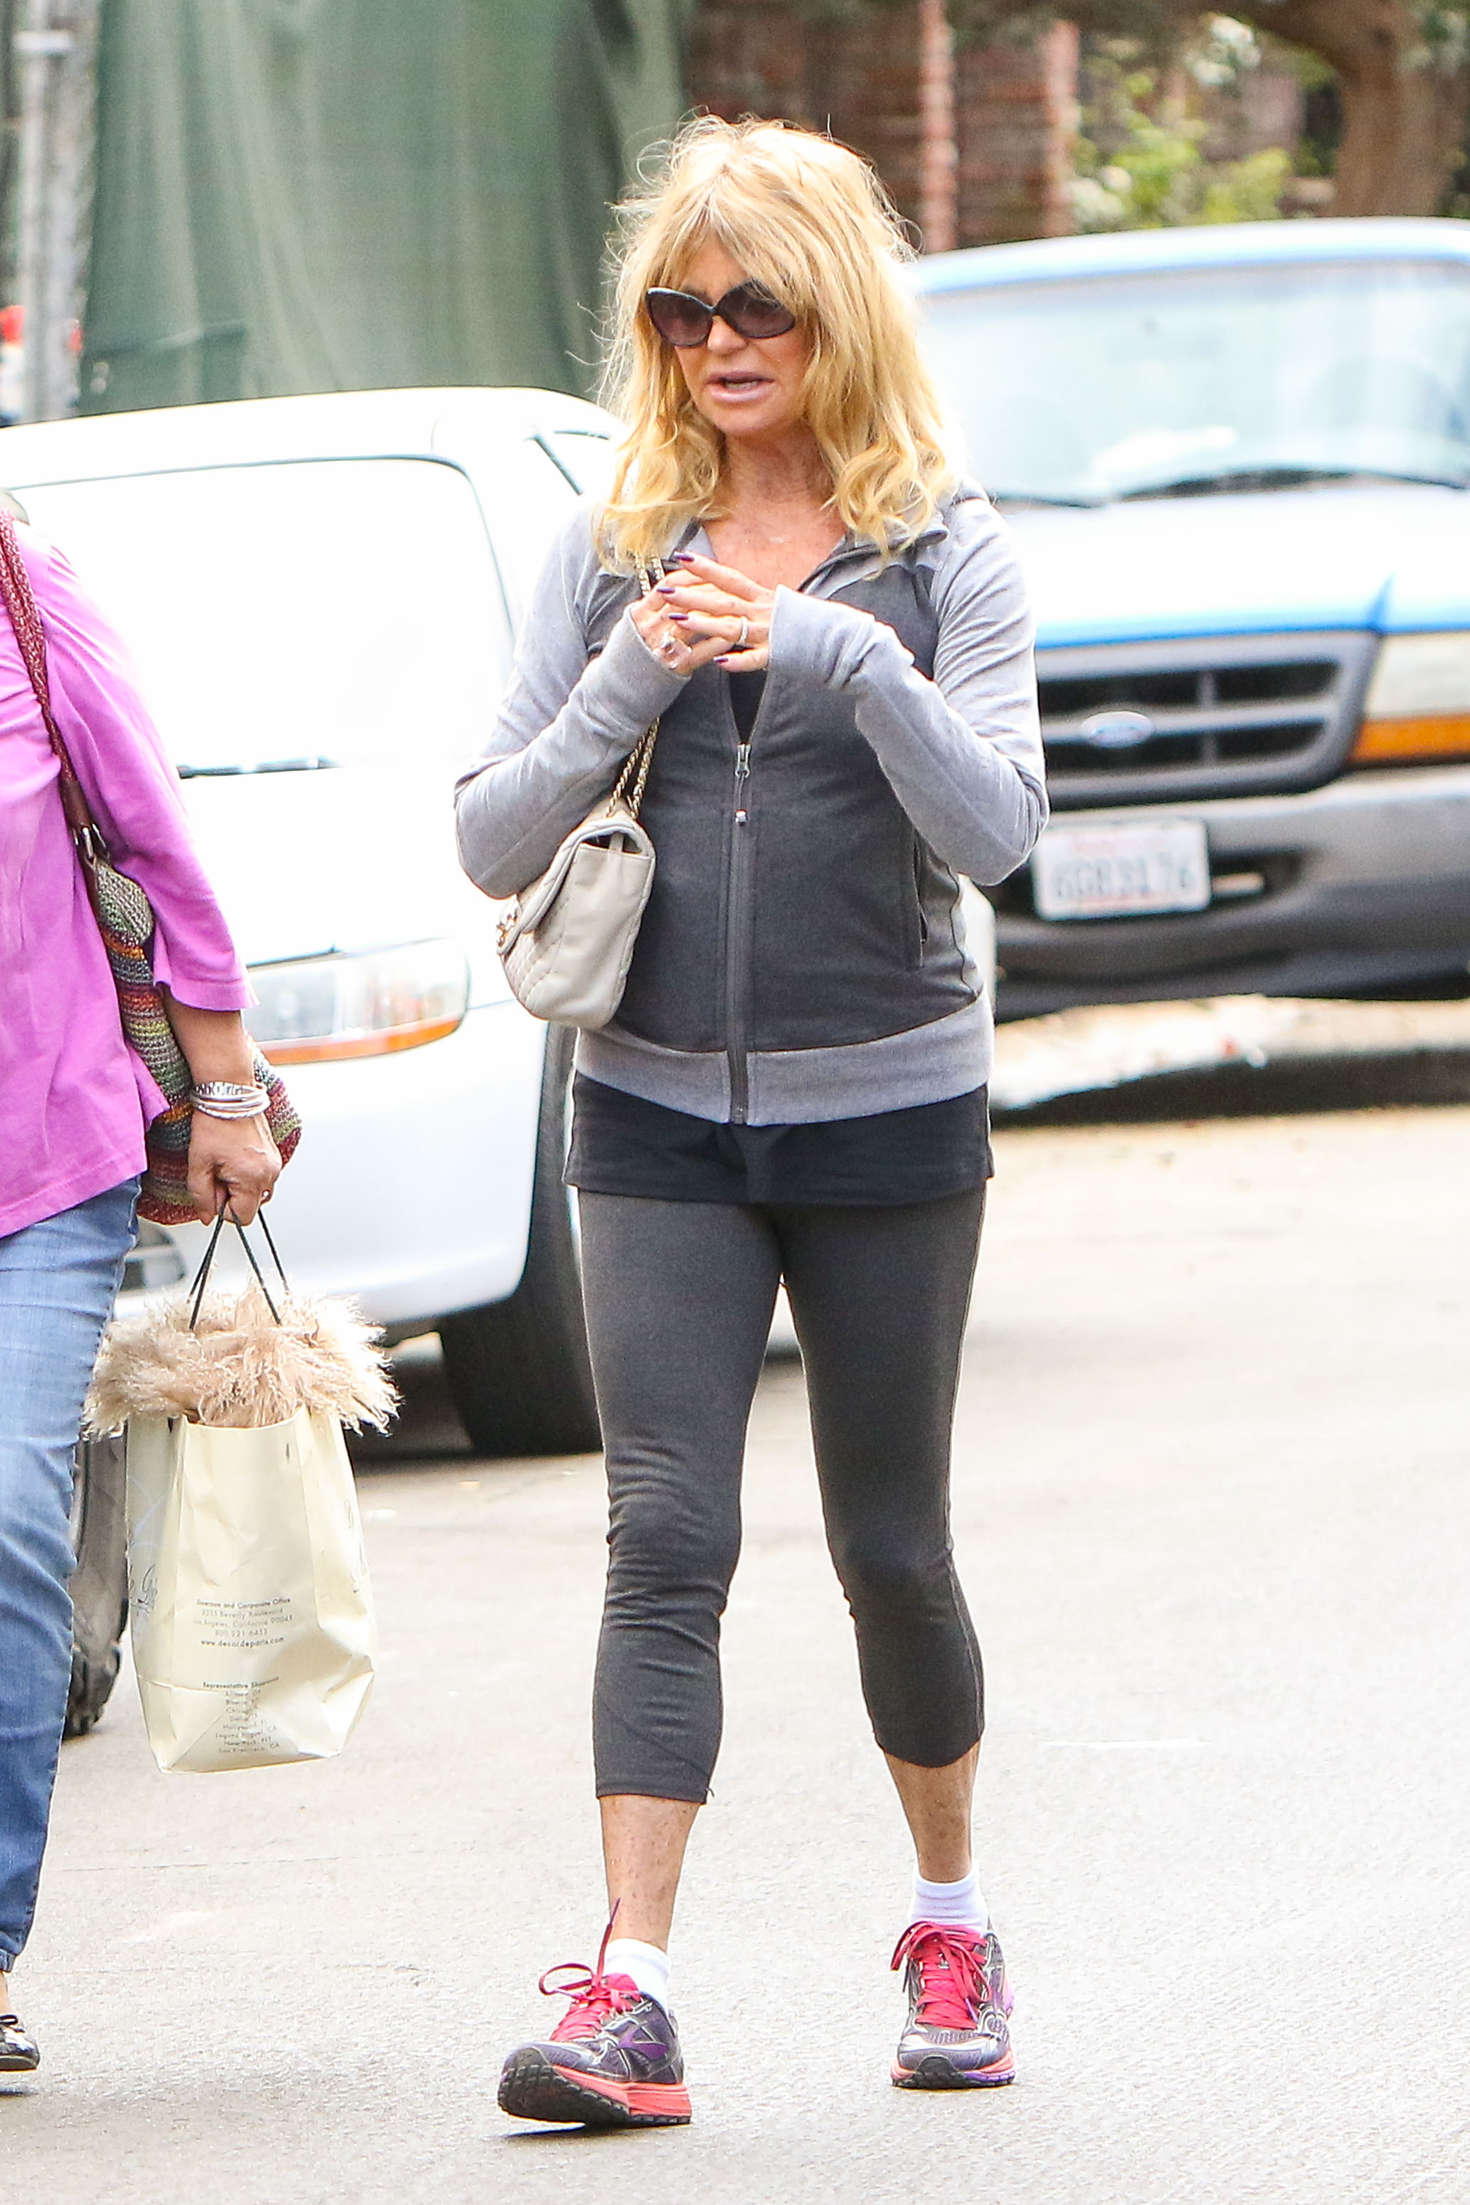 Goldie Hawn in Tights Out for a morning walk in LA